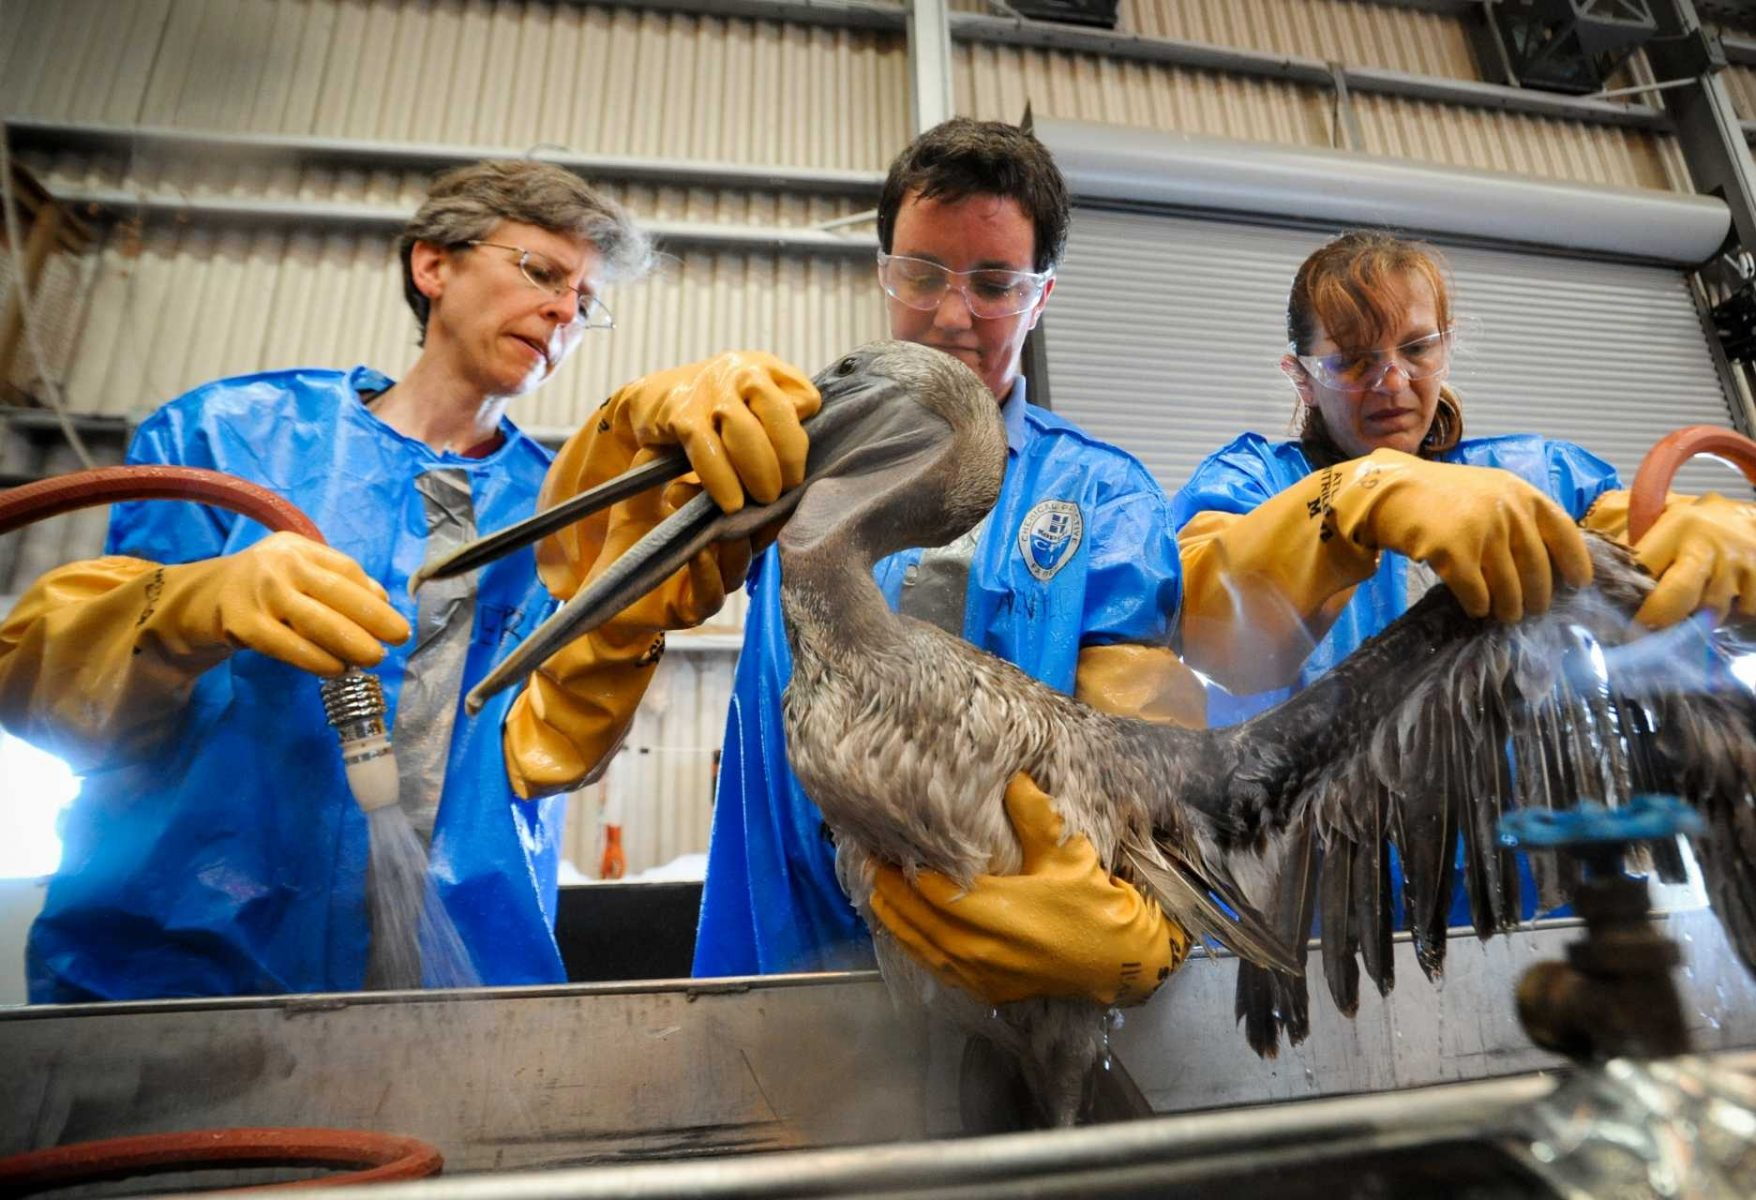 De-oiling birds at the BP oil spill in the Gulf of Mexico. USA.